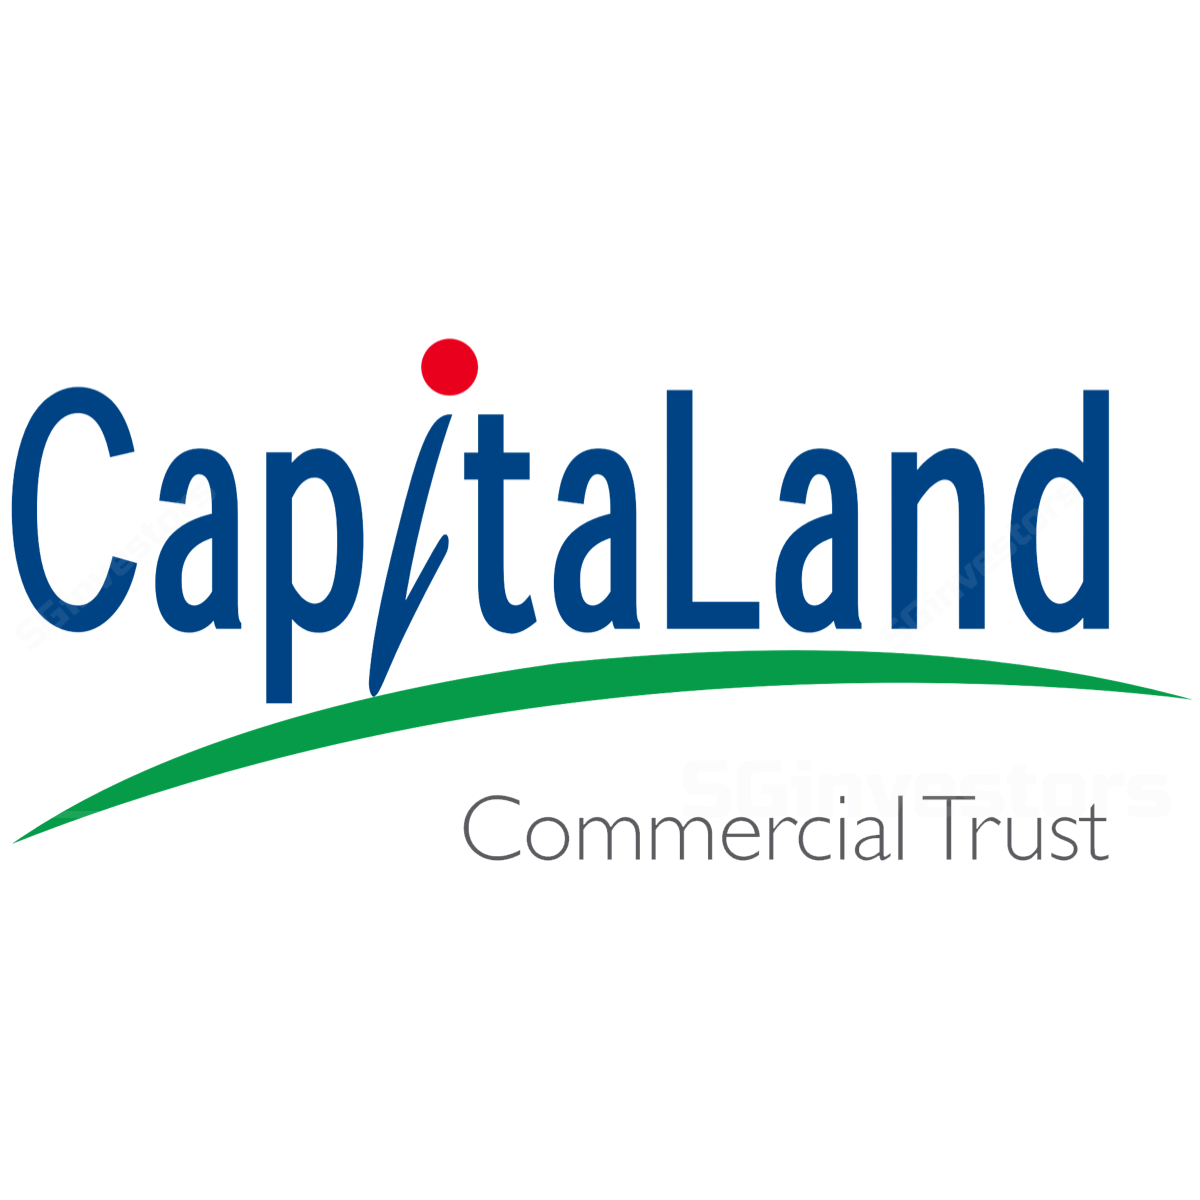 CapitaLand Commercial Trust - DBS Vickers 2017-04-20: Powering ahead